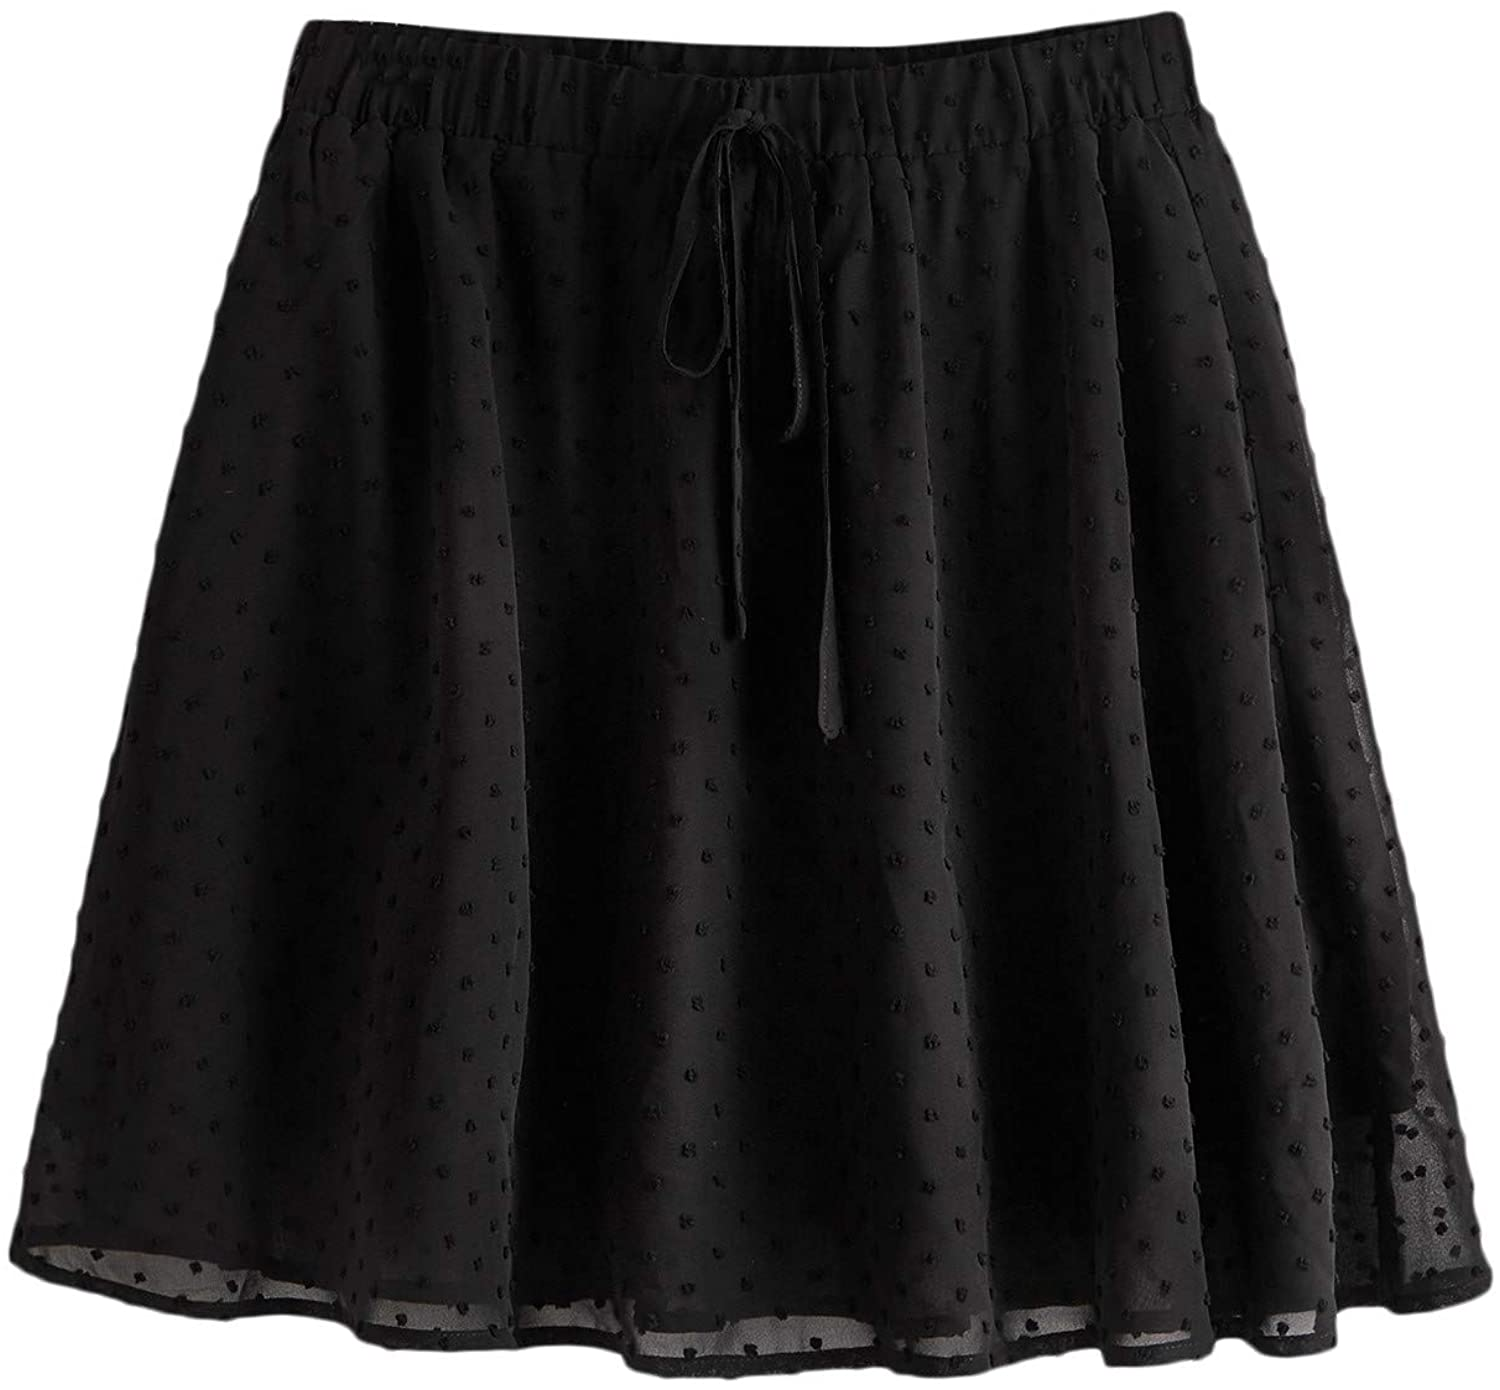 Milumia Women's Casual Zip Back Textured Skater Skirt Solid Black